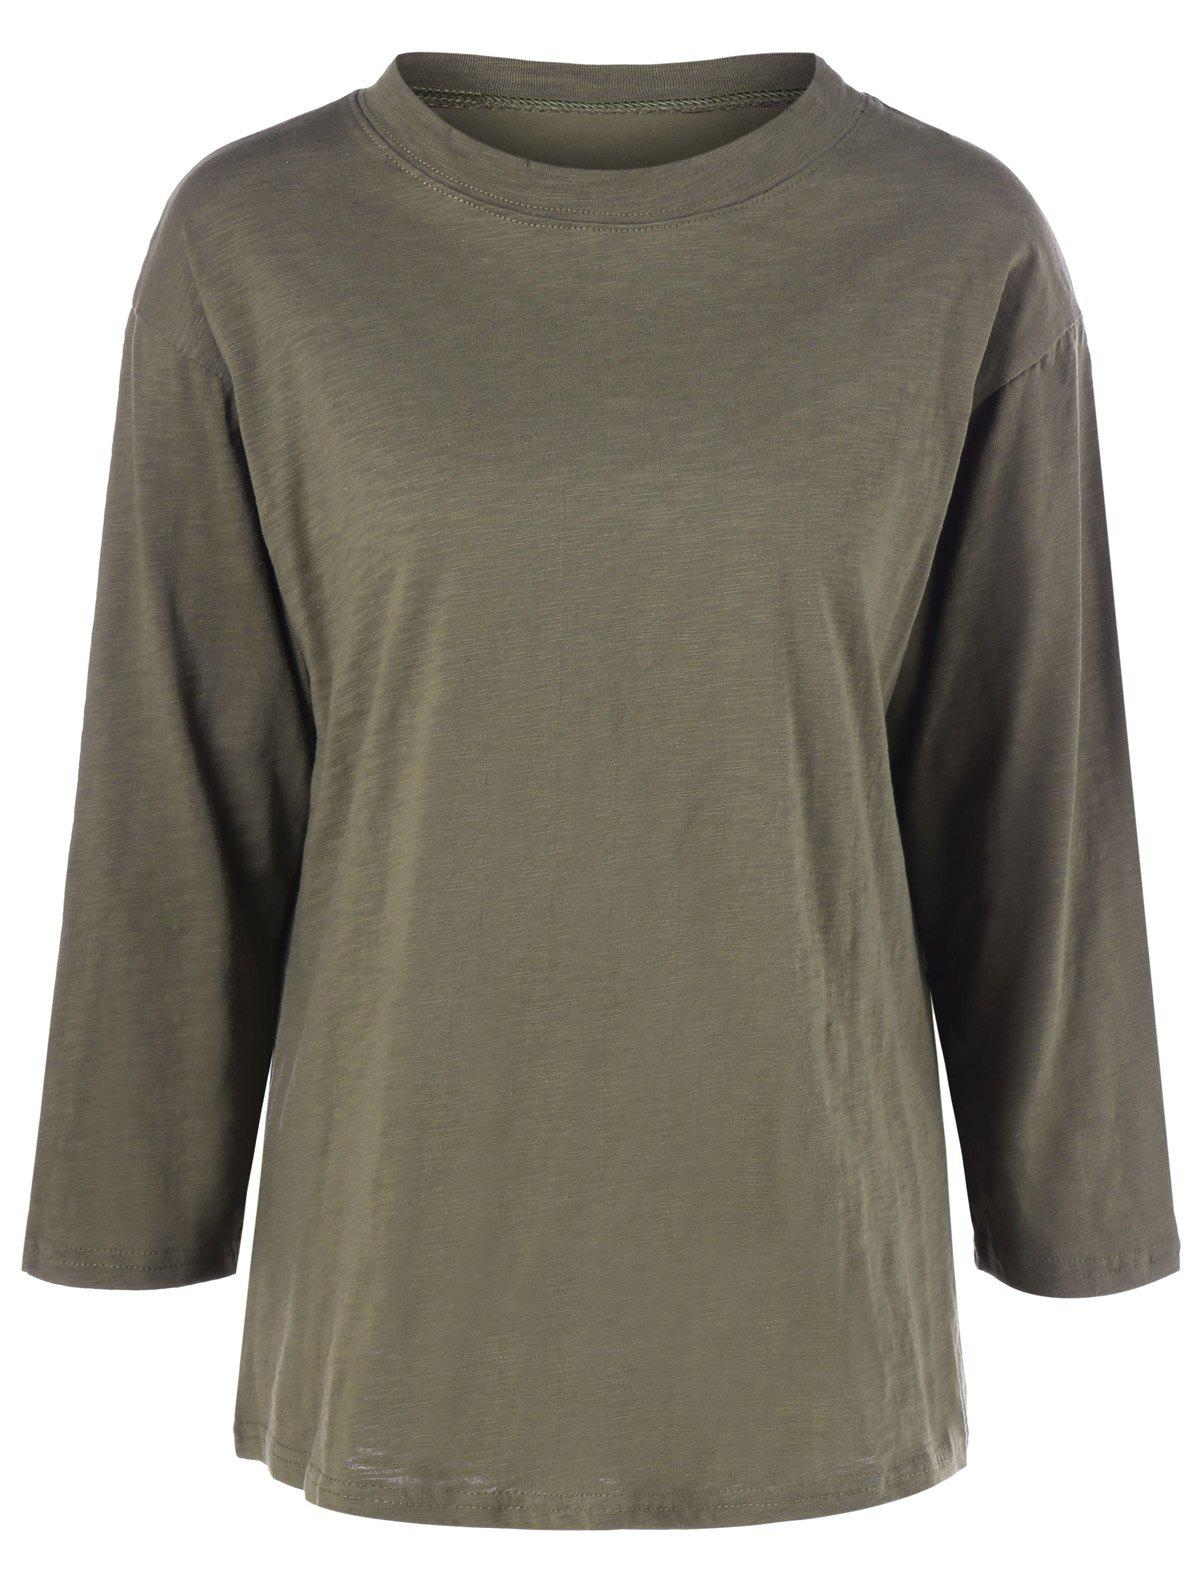 Plus Size Long Sleeve T Shirt - ARMY GREEN 2XL